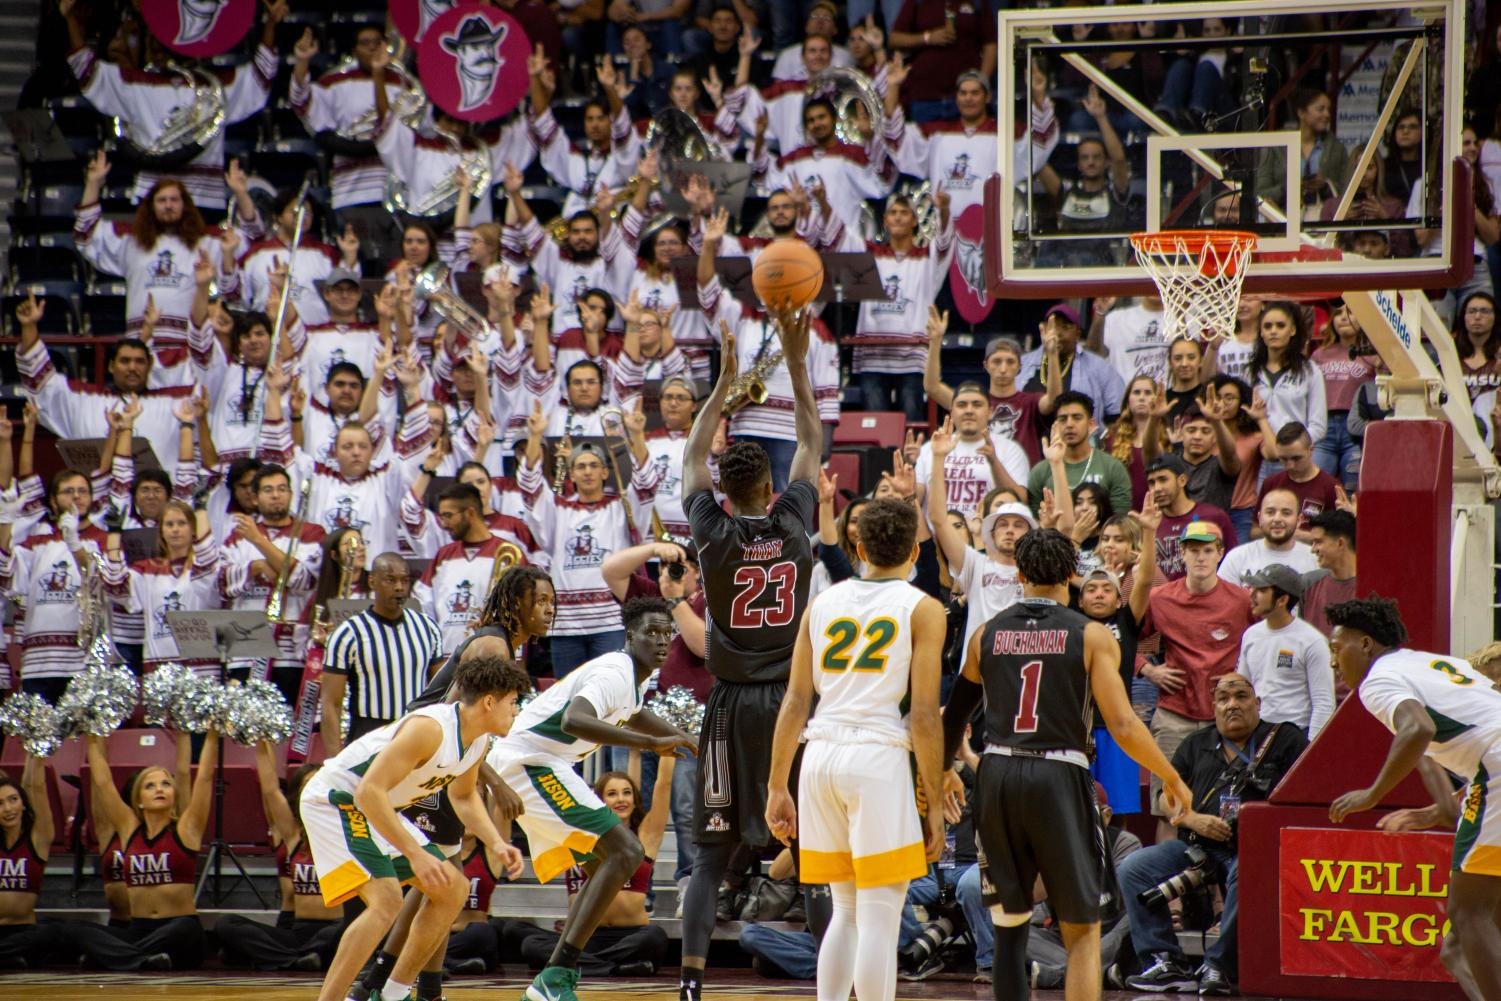 The student section came out in full force for NMSU's 73-56 win over NDSU on Tuesday.